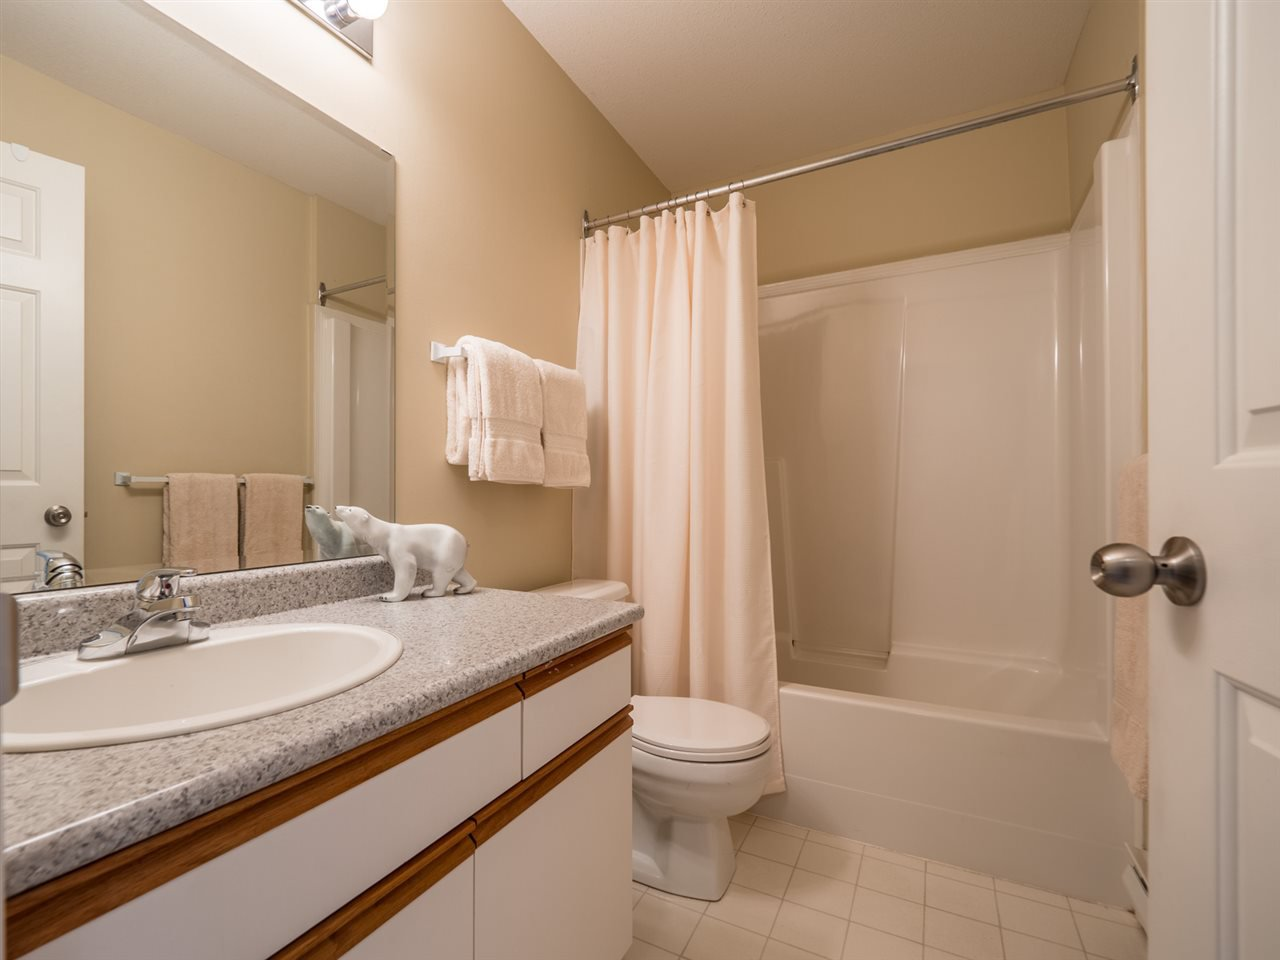 """Photo 10: Photos: 16 5630 TRAIL Avenue in Sechelt: Sechelt District Townhouse for sale in """"HIGHPOINT"""" (Sunshine Coast)  : MLS®# R2382780"""